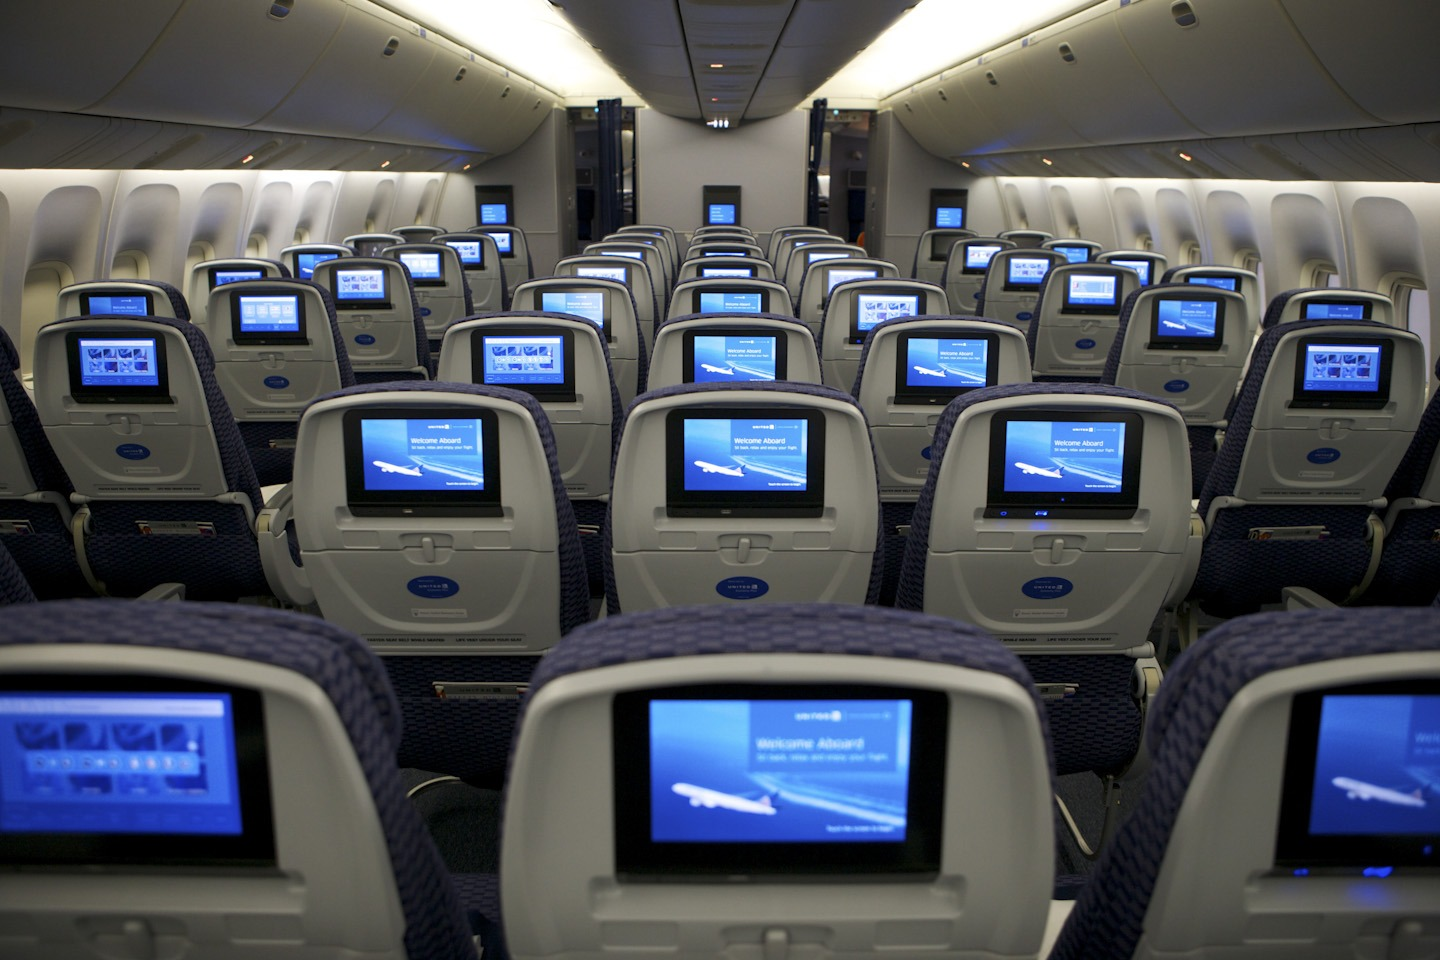 United's Economy Plus on board a Boeing 767 aircraft.